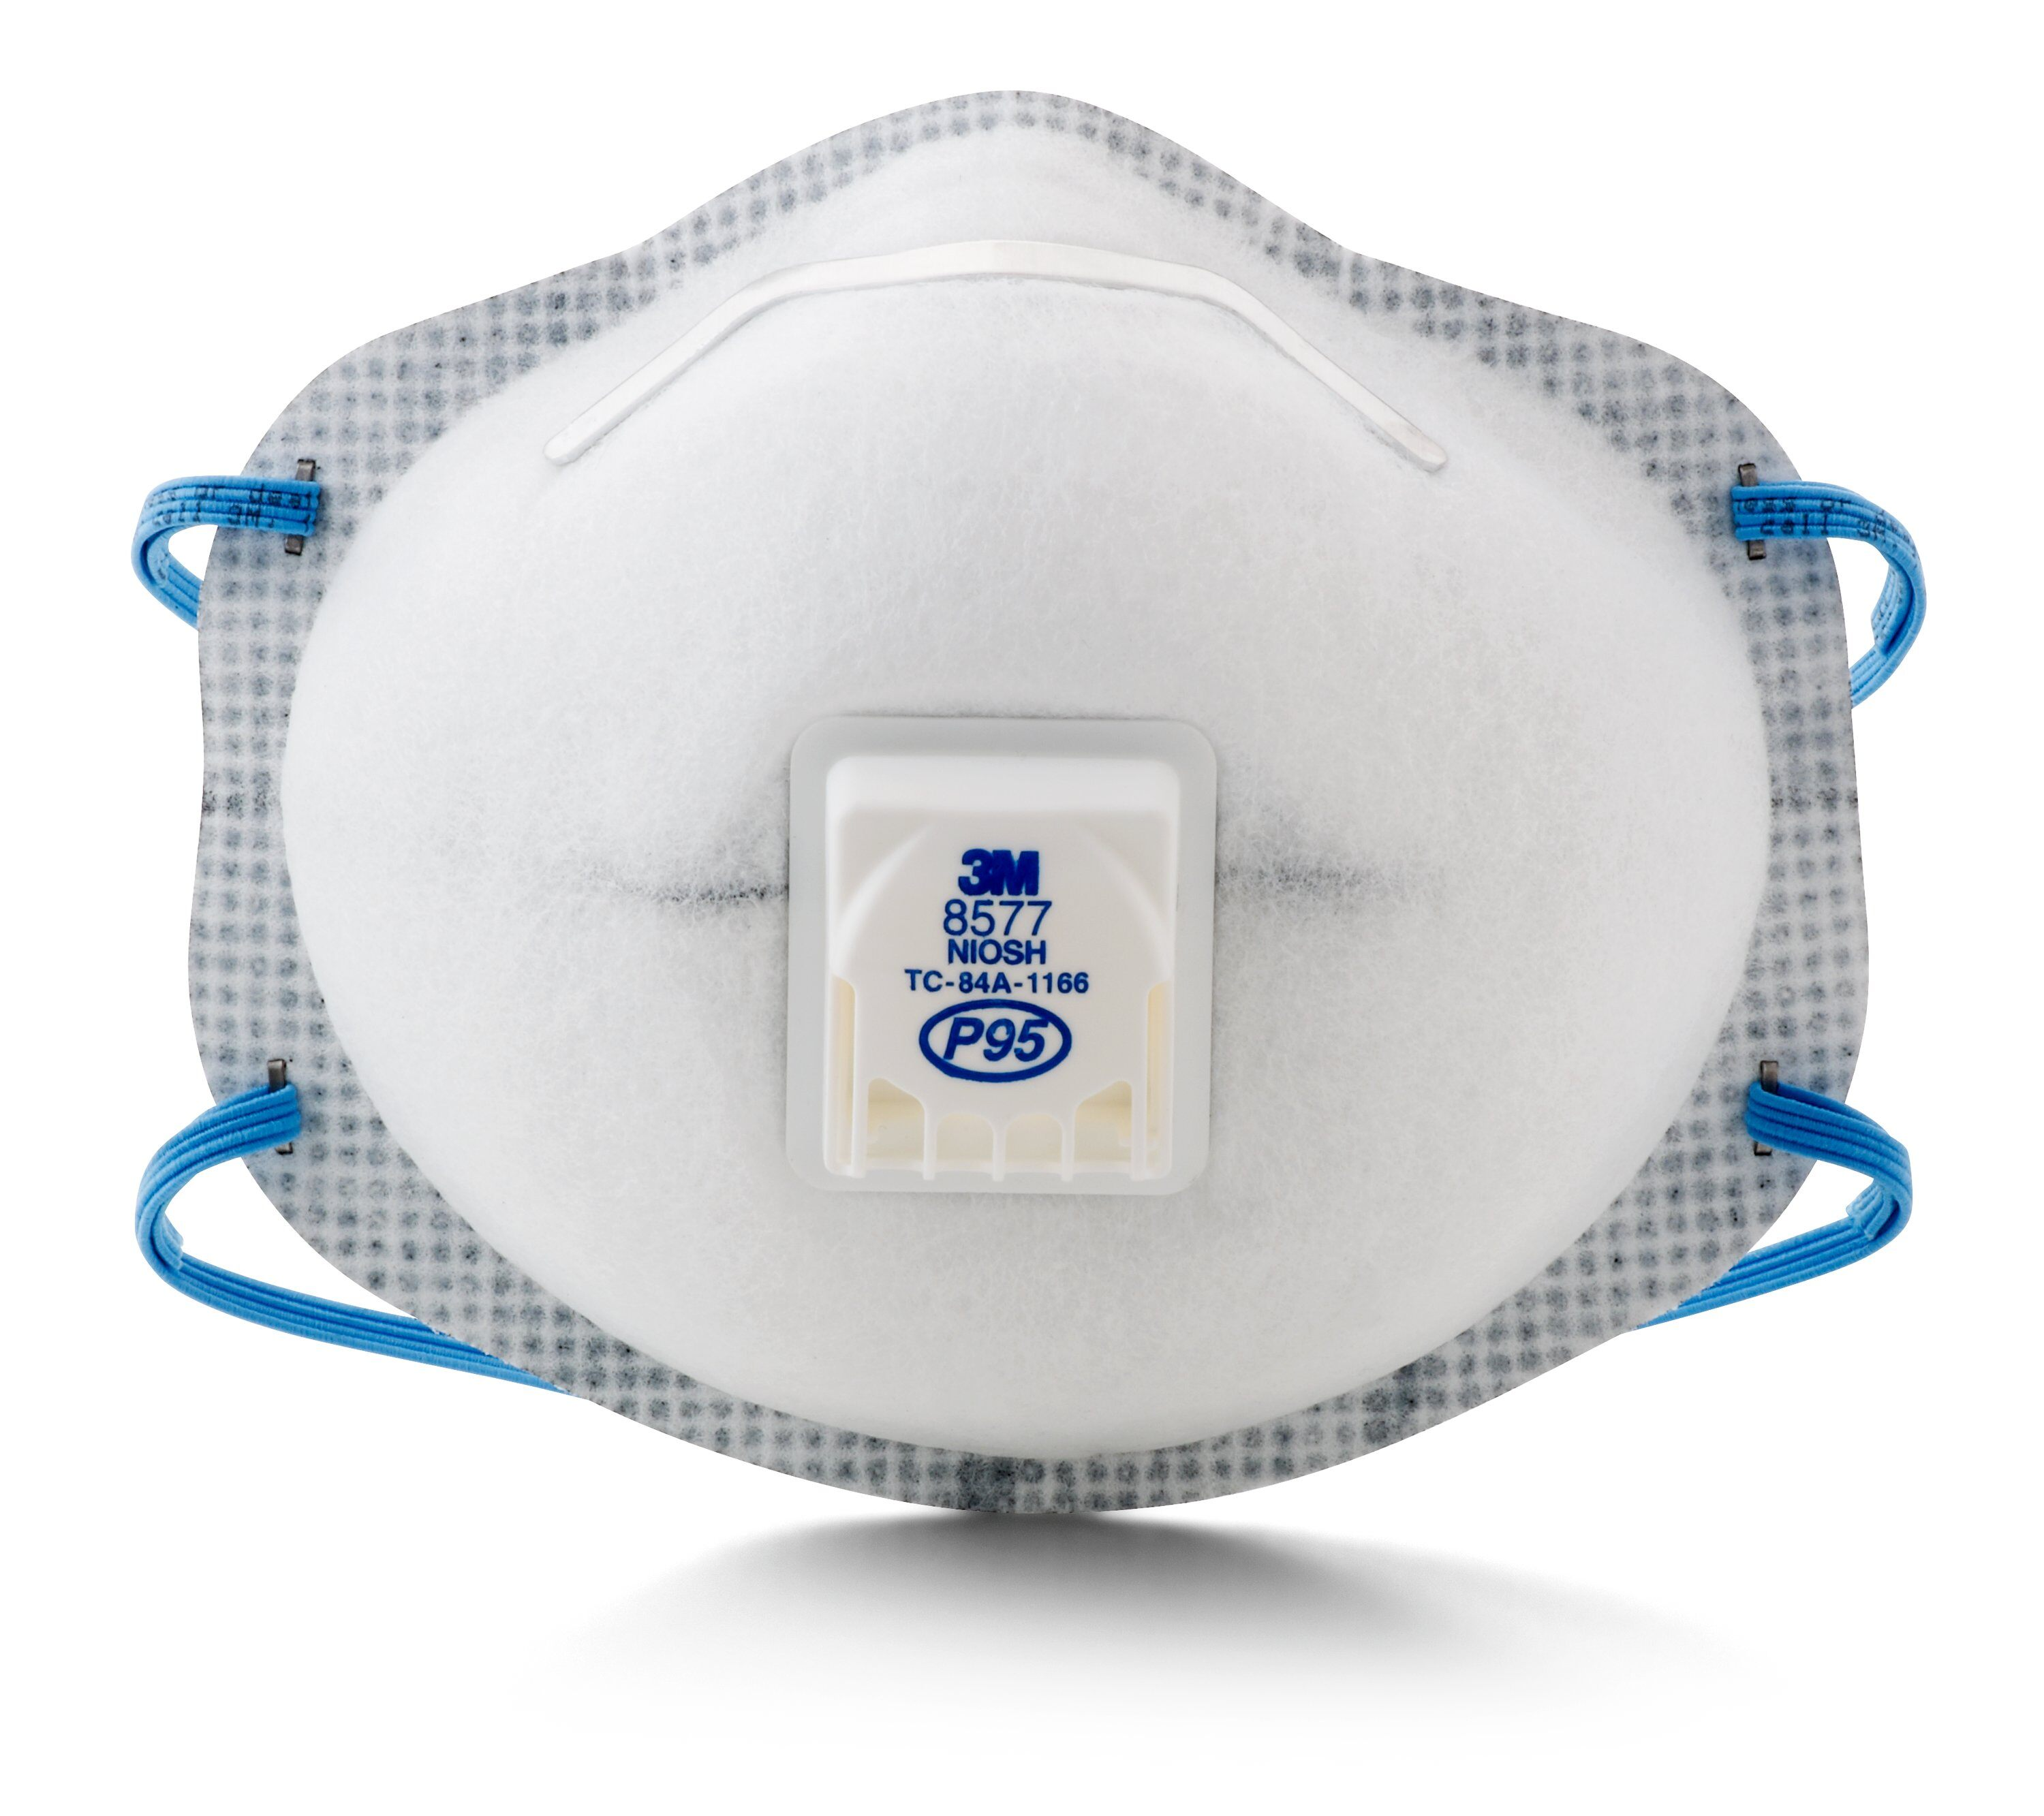 3M™ 8577 Standard Particulate Respirator With Nuisance Level Organic Vapor Relief, Resists: Oil and Non-Oil Based Particles